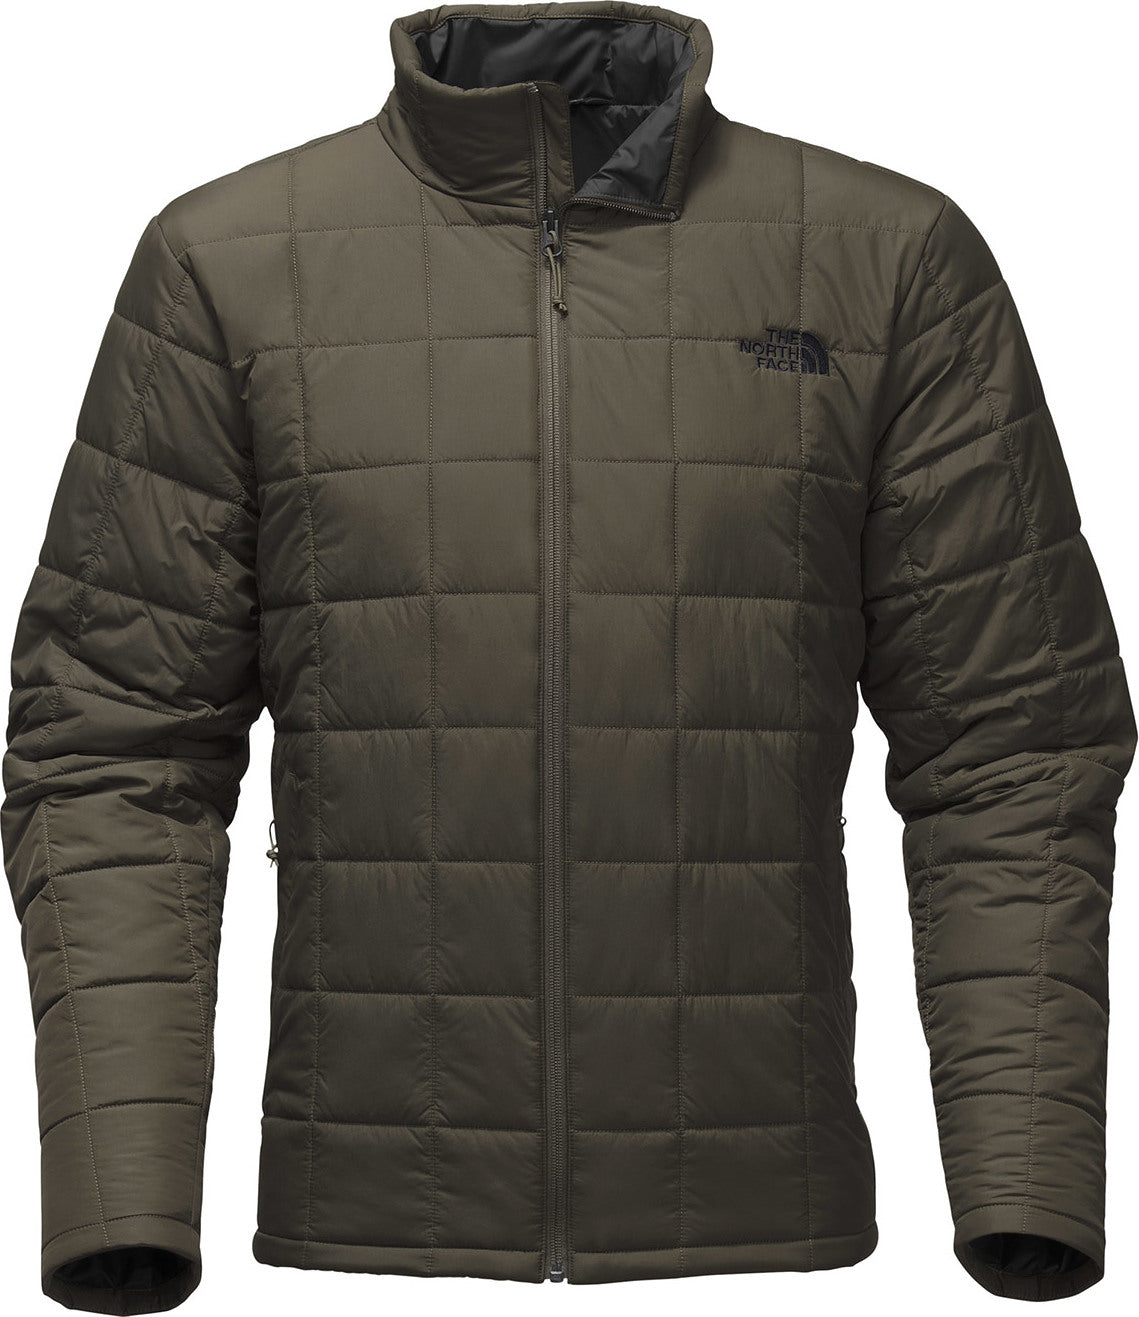 c88e4758a The North Face Men's Harway Jacket